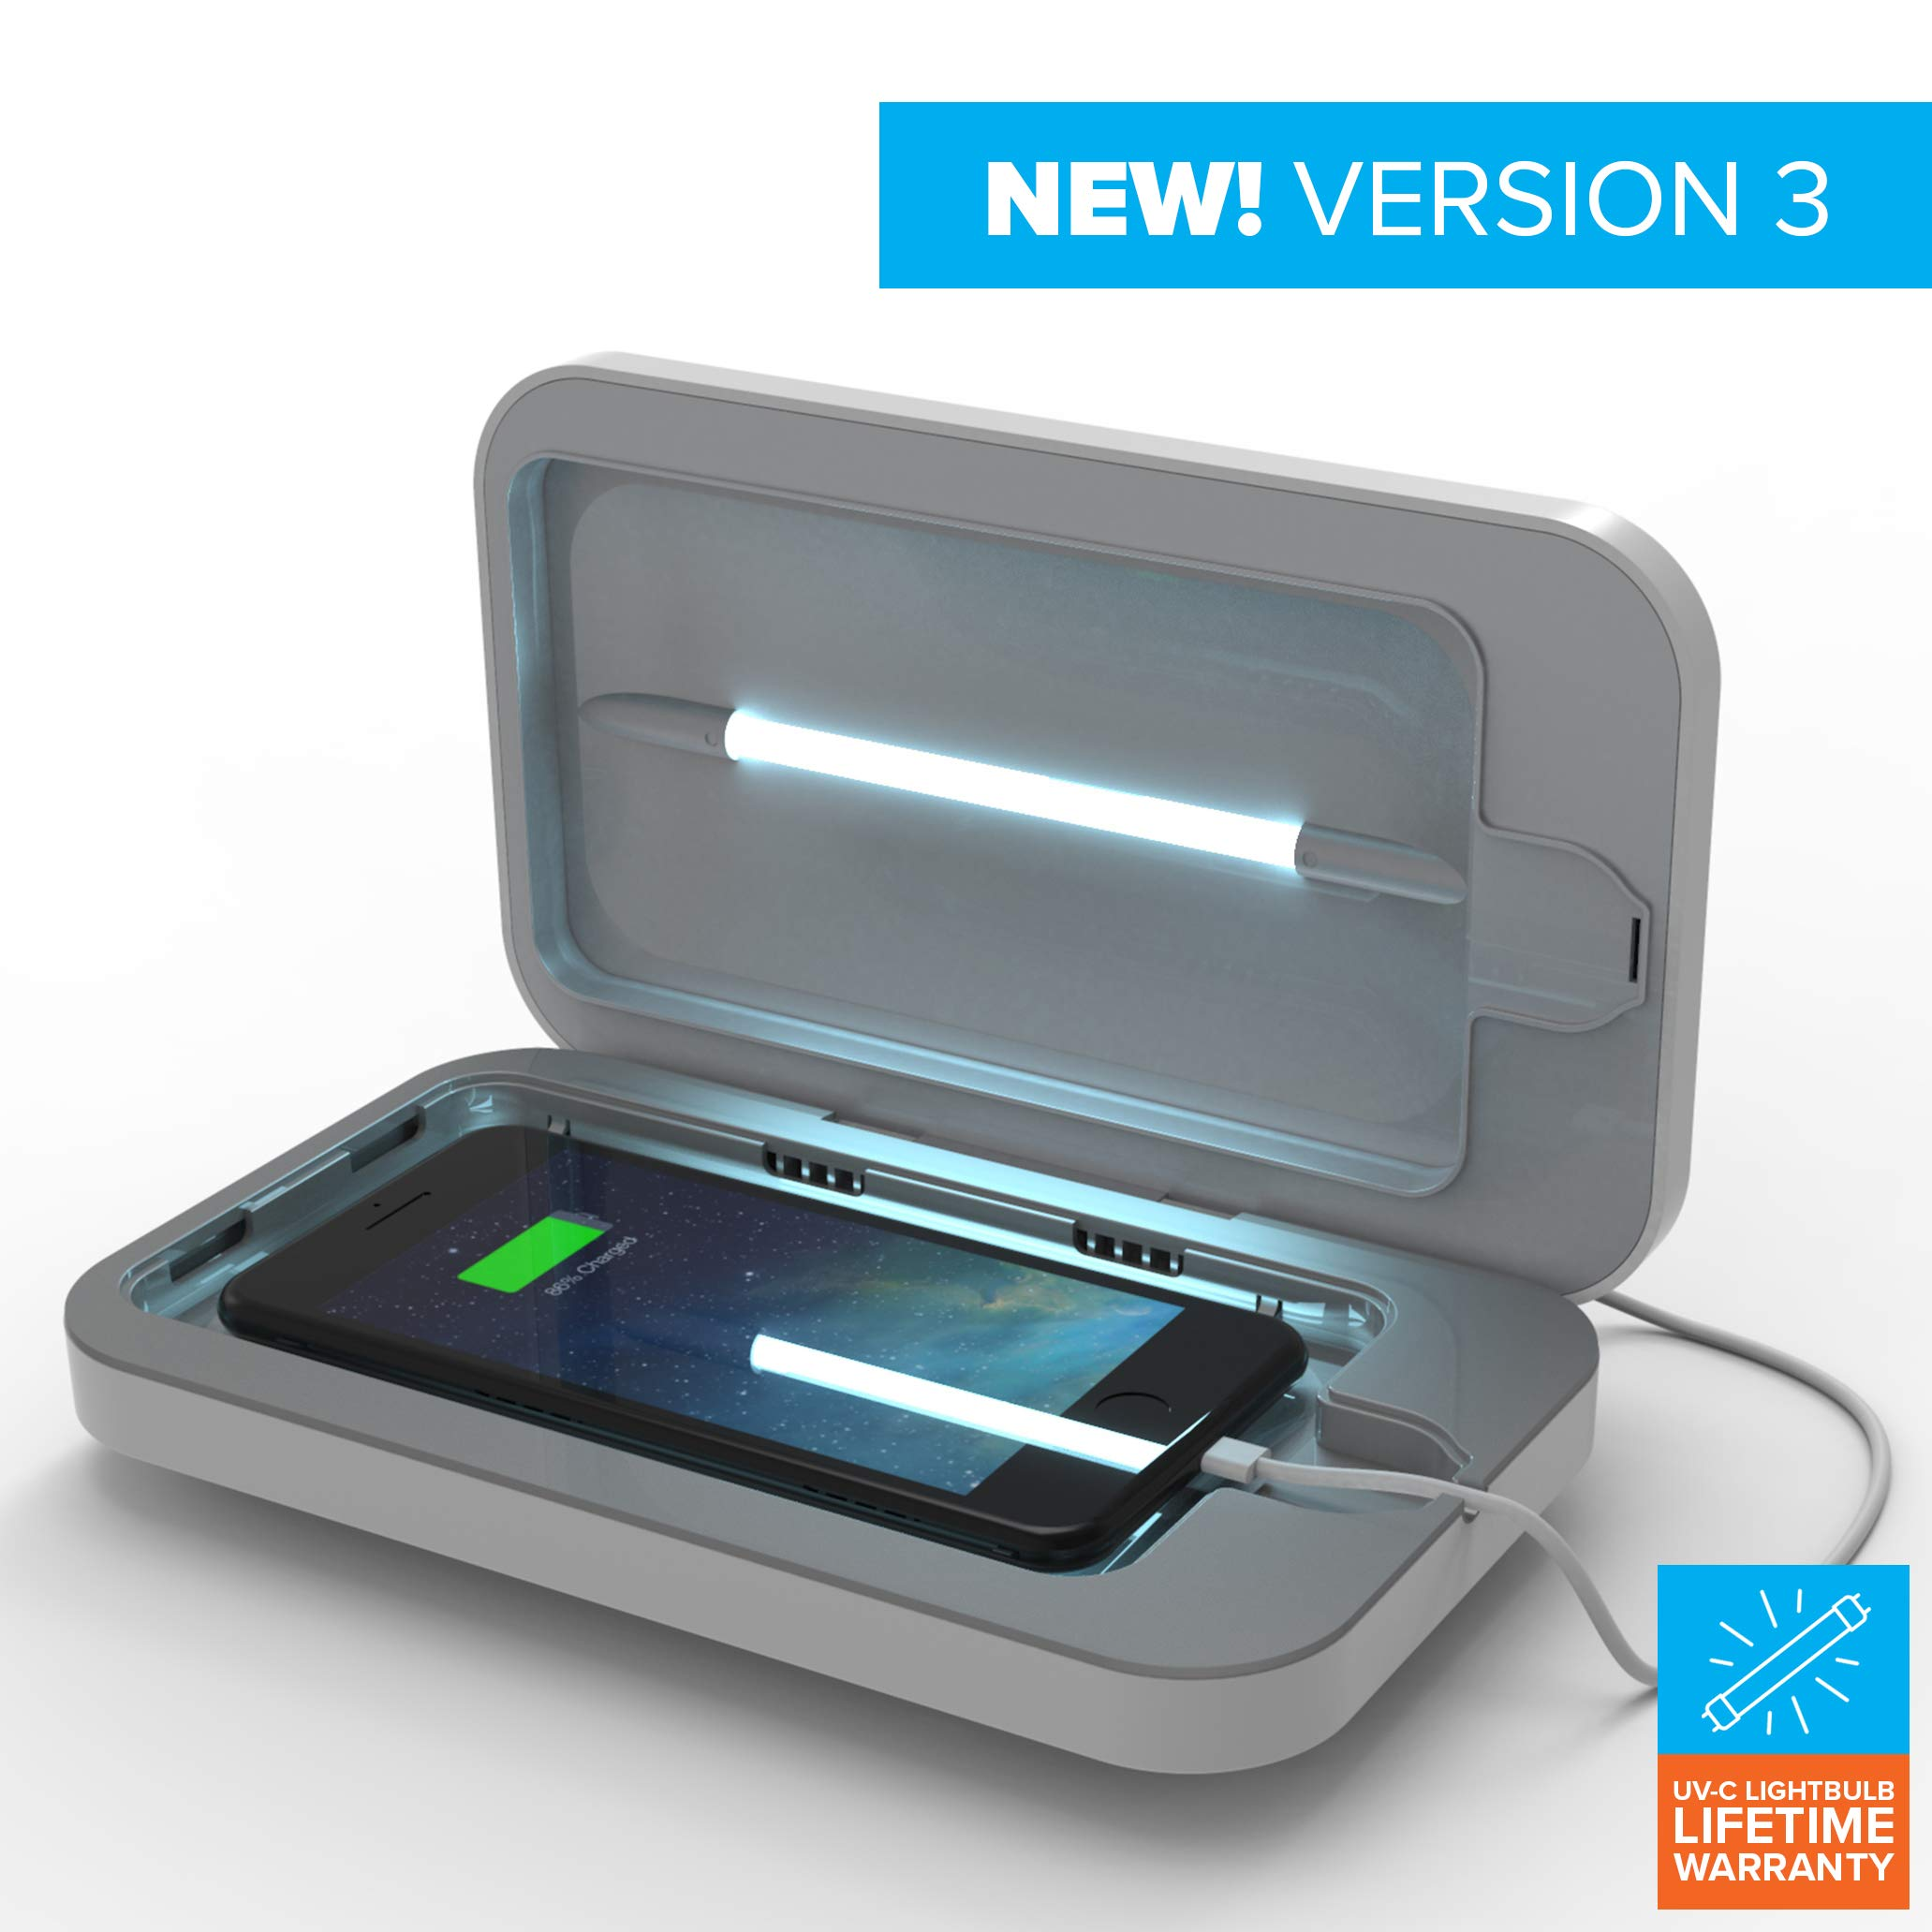 ویکالا · خرید  اصل اورجینال · خرید از آمازون · PhoneSoap 3 UV Cell Phone Sanitizer and Dual Universal Cell Phone Charger | Patented and Clinically Proven UV Light Sanitizer | Cleans and Charges All Phones - White wekala · ویکالا